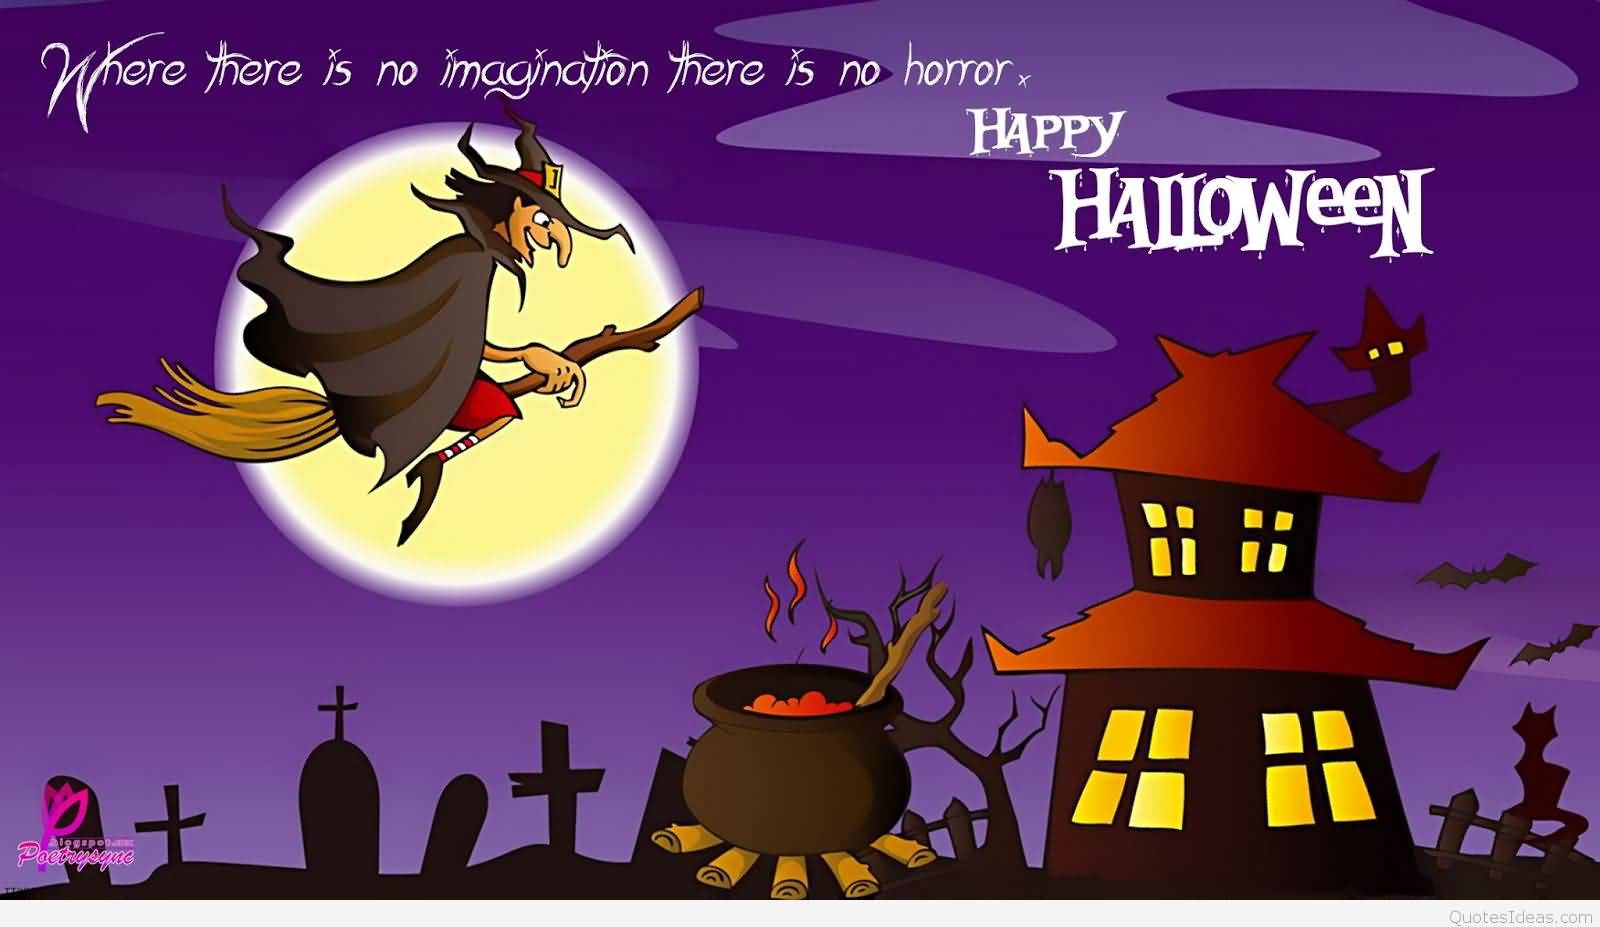 Where There Is No Imagination There Is No Humor Happy Halloween Greeting  Ecard